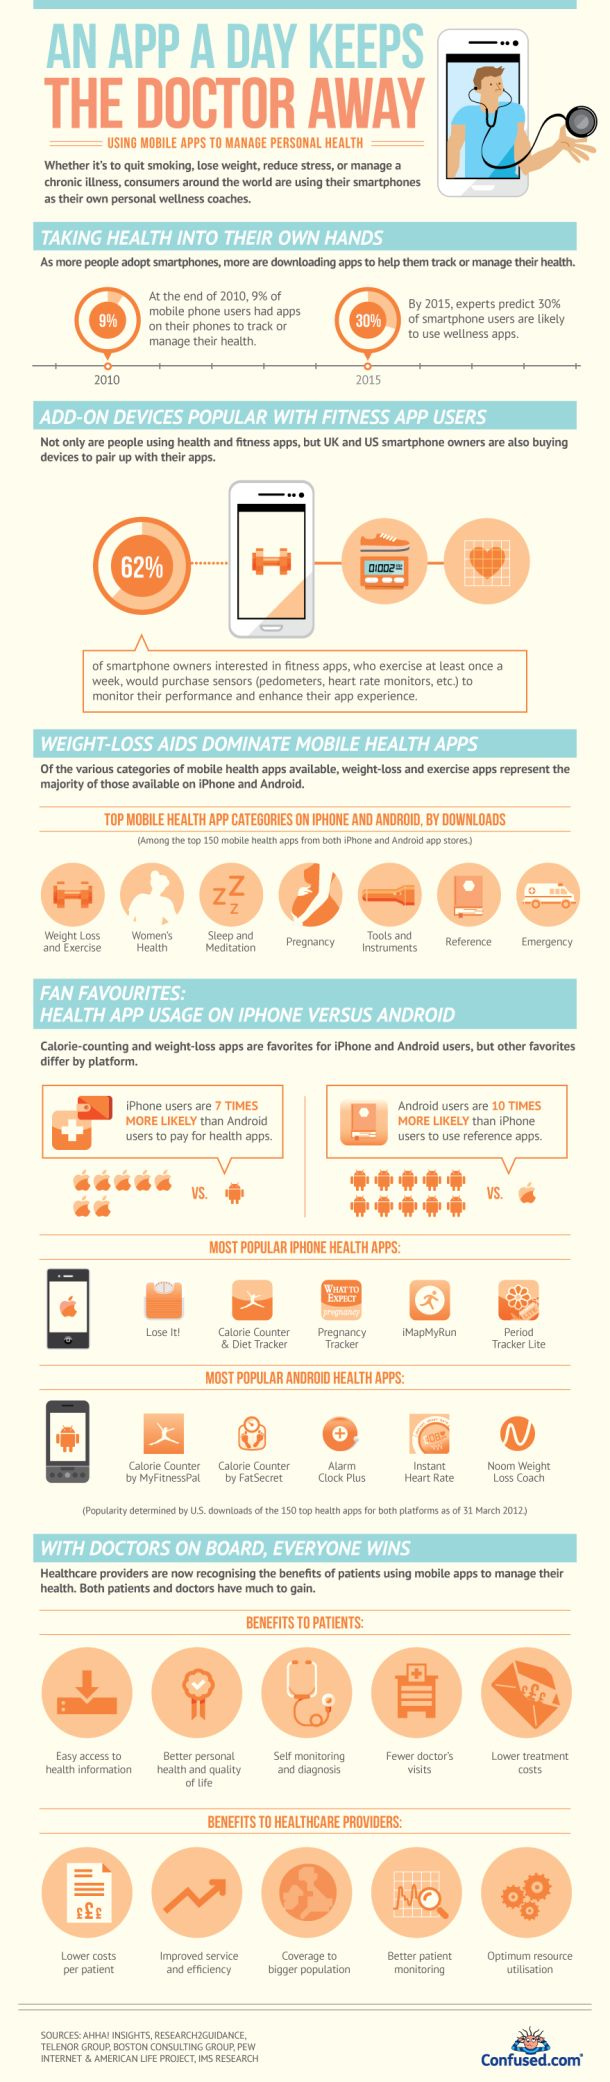 An App a Day Keeps The Doctor Away [INFOGRAPHIC]